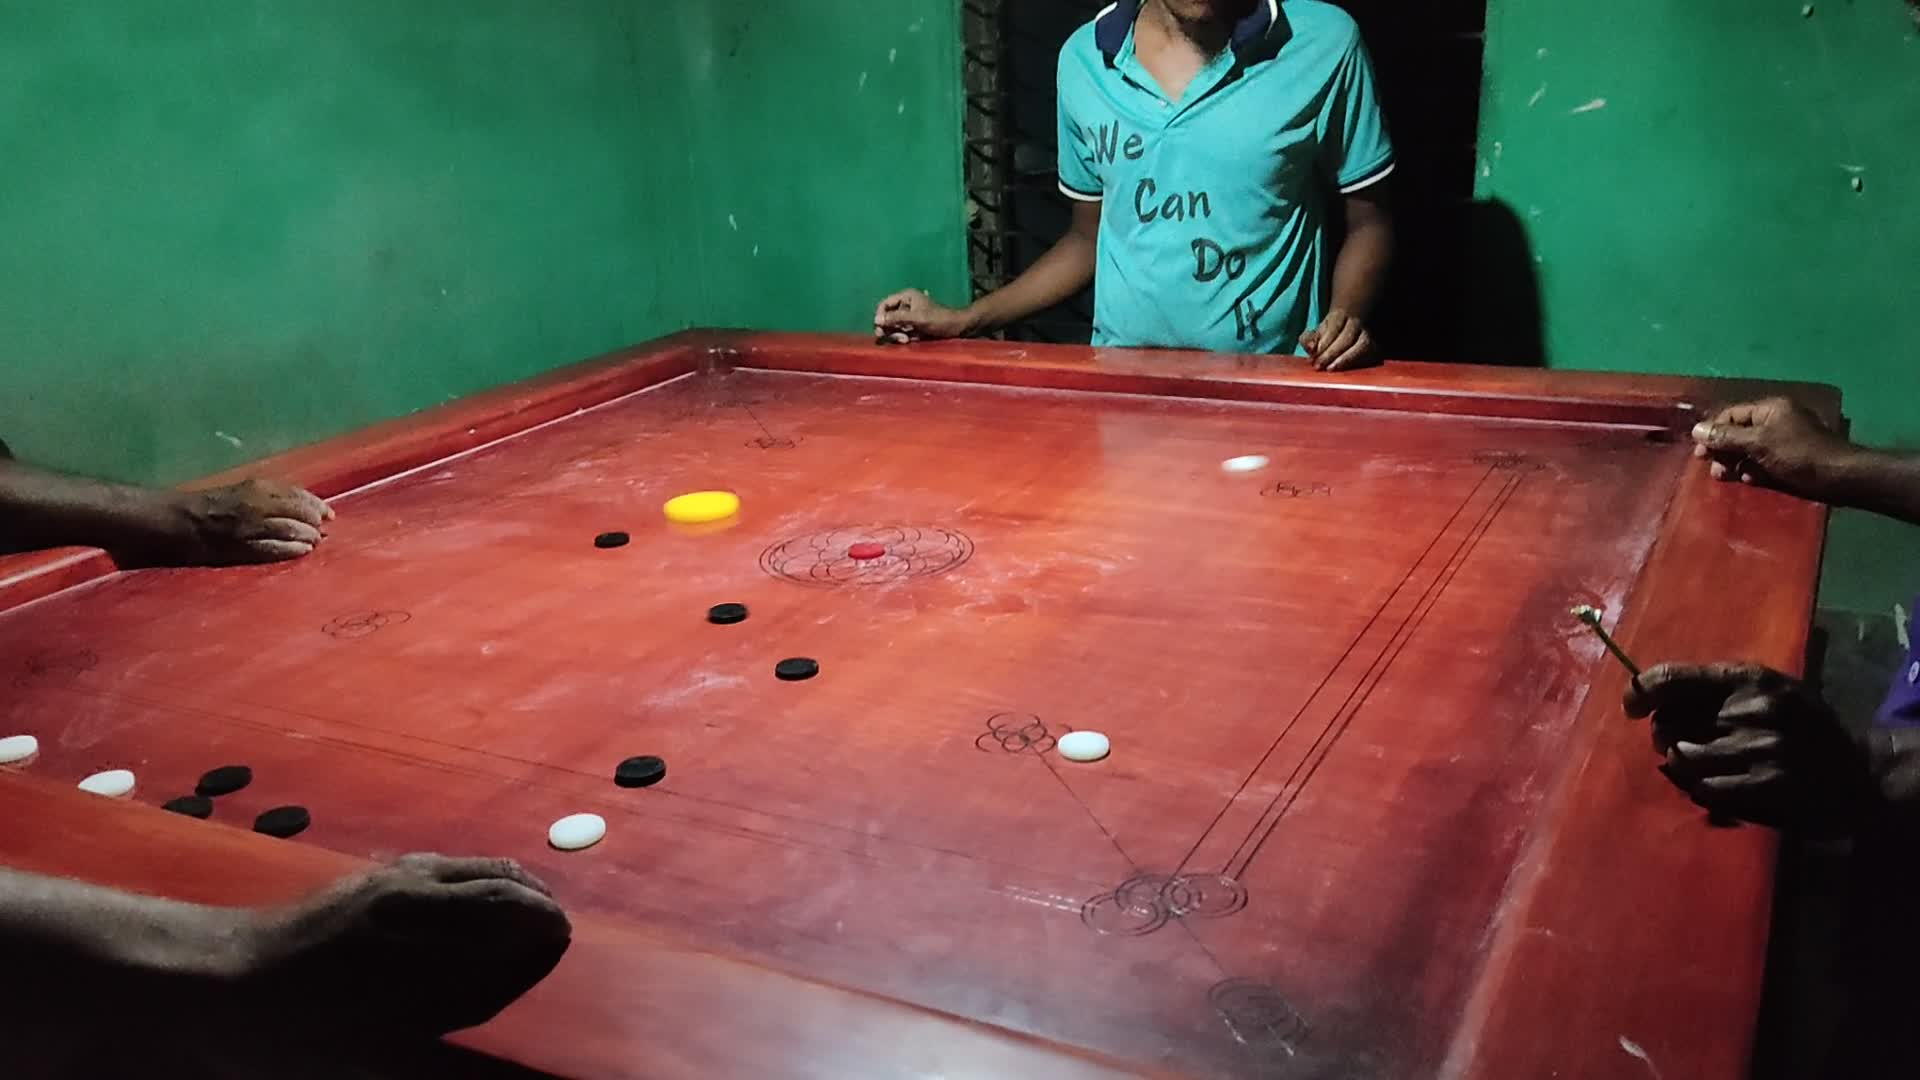 Keram board game competition